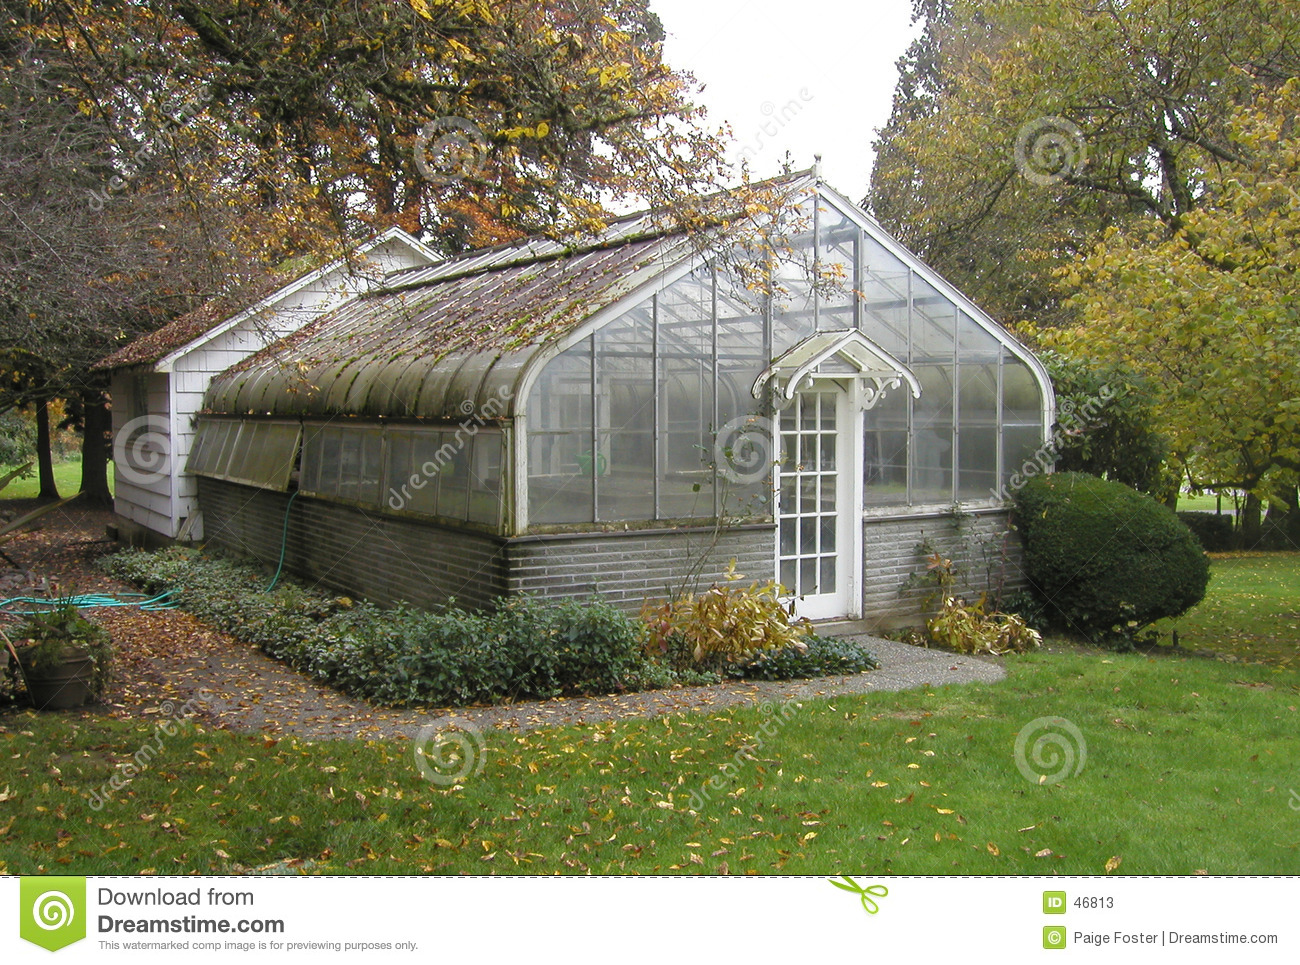 Download Rustic old greenhouse stock image. Image of door, fall, autumn - 46813